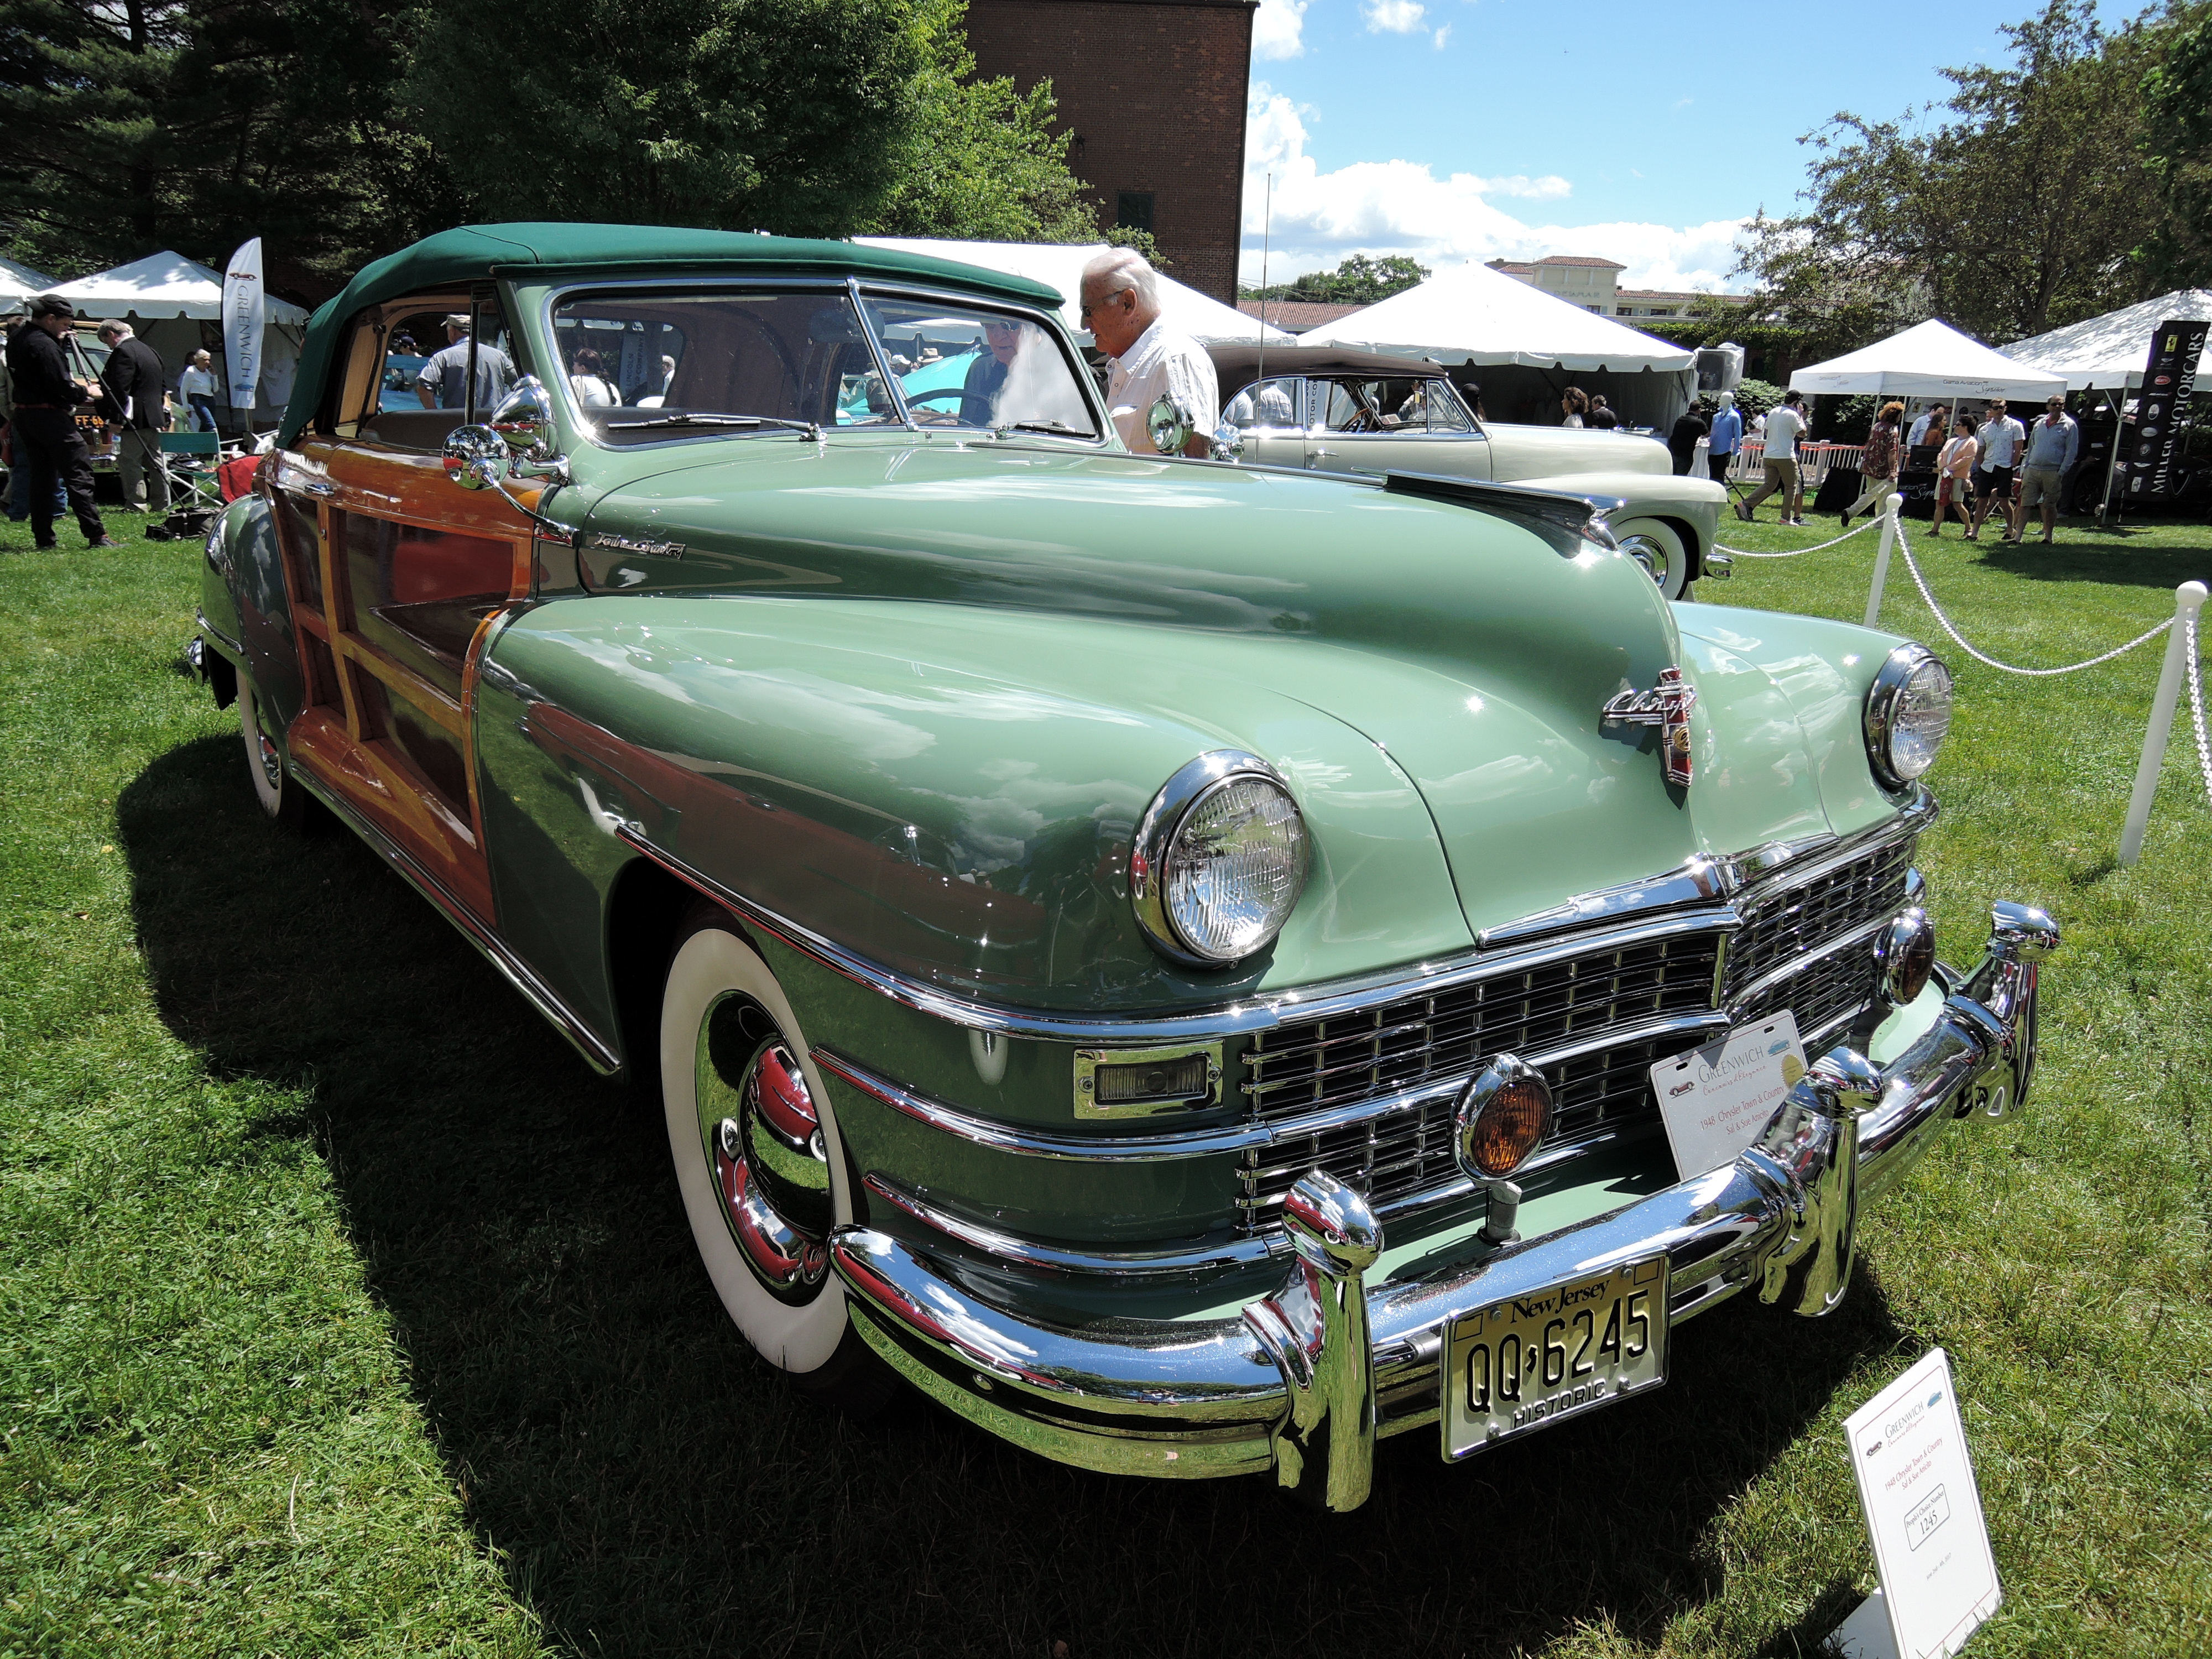 green/wood 1948 Chrysler Town & Country - Greenwich Concours d'Elegance 2017